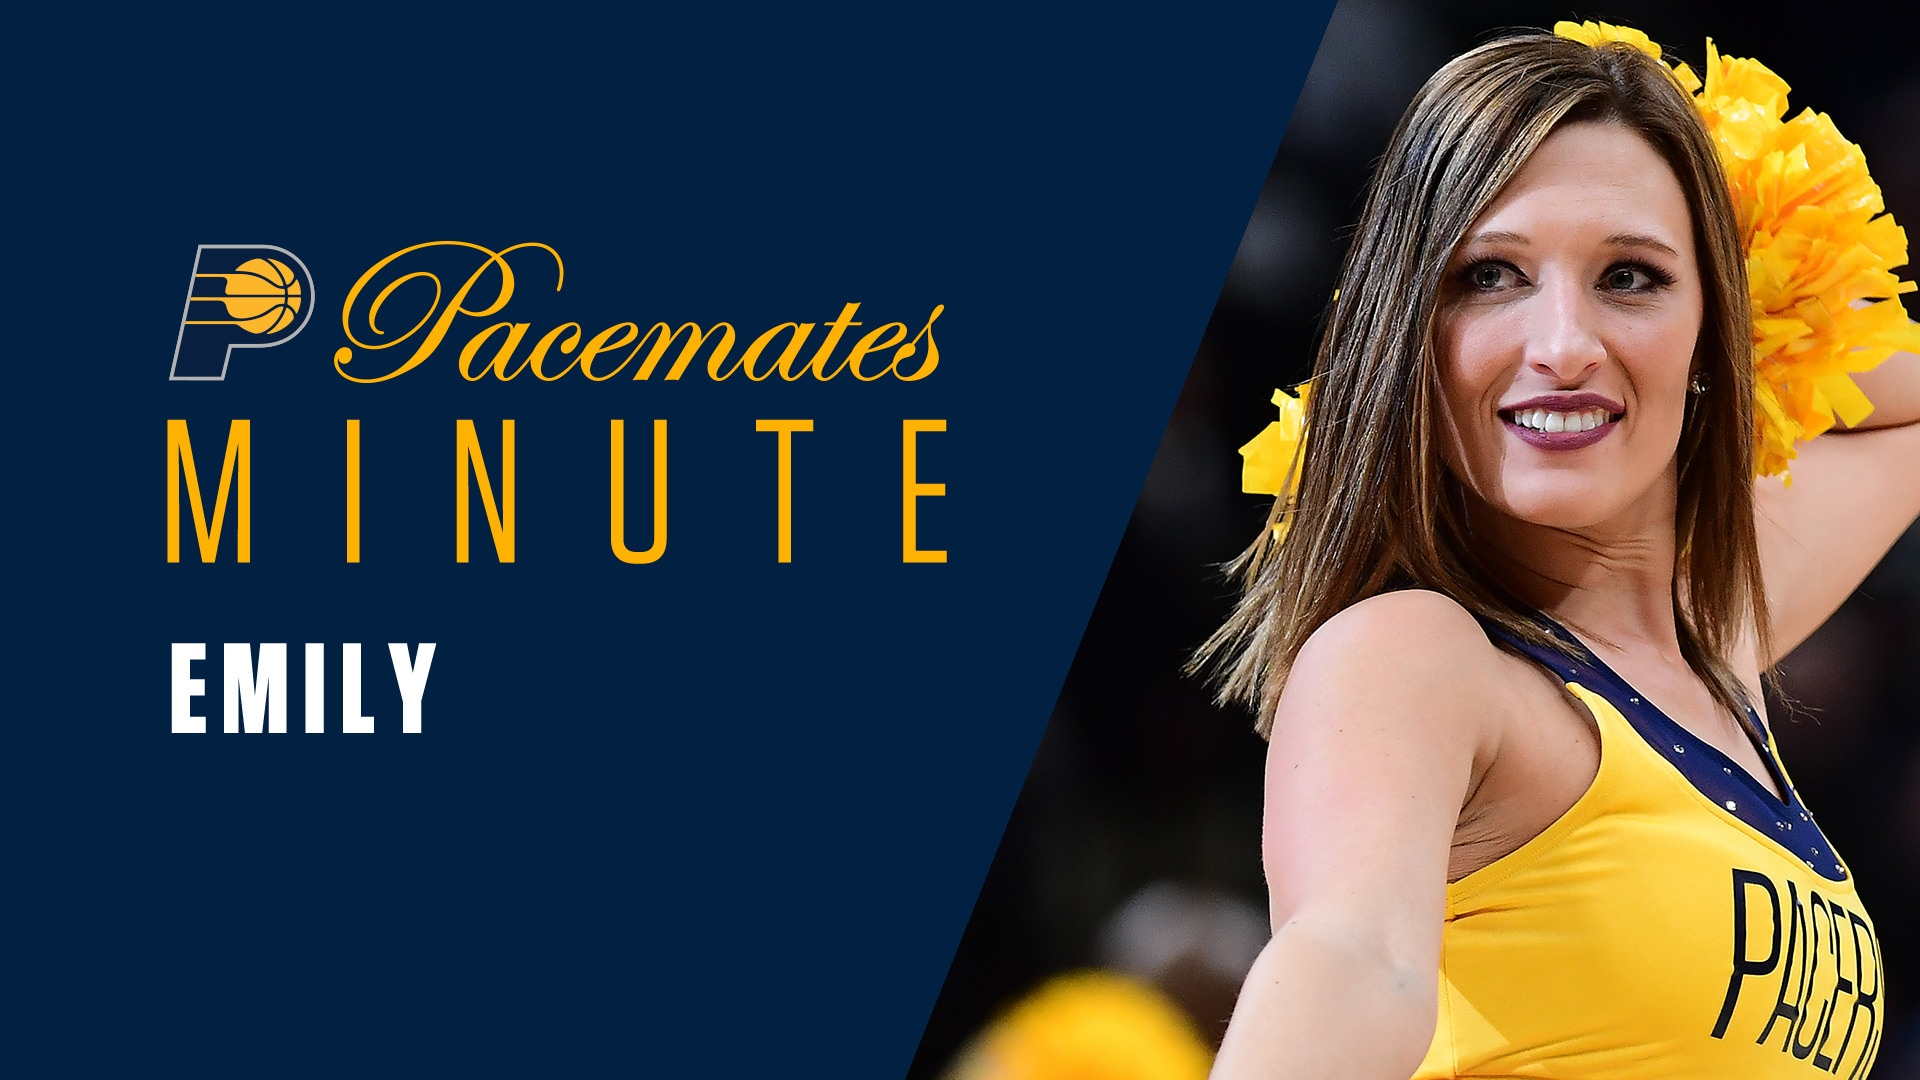 Pacemates Minute: Emily